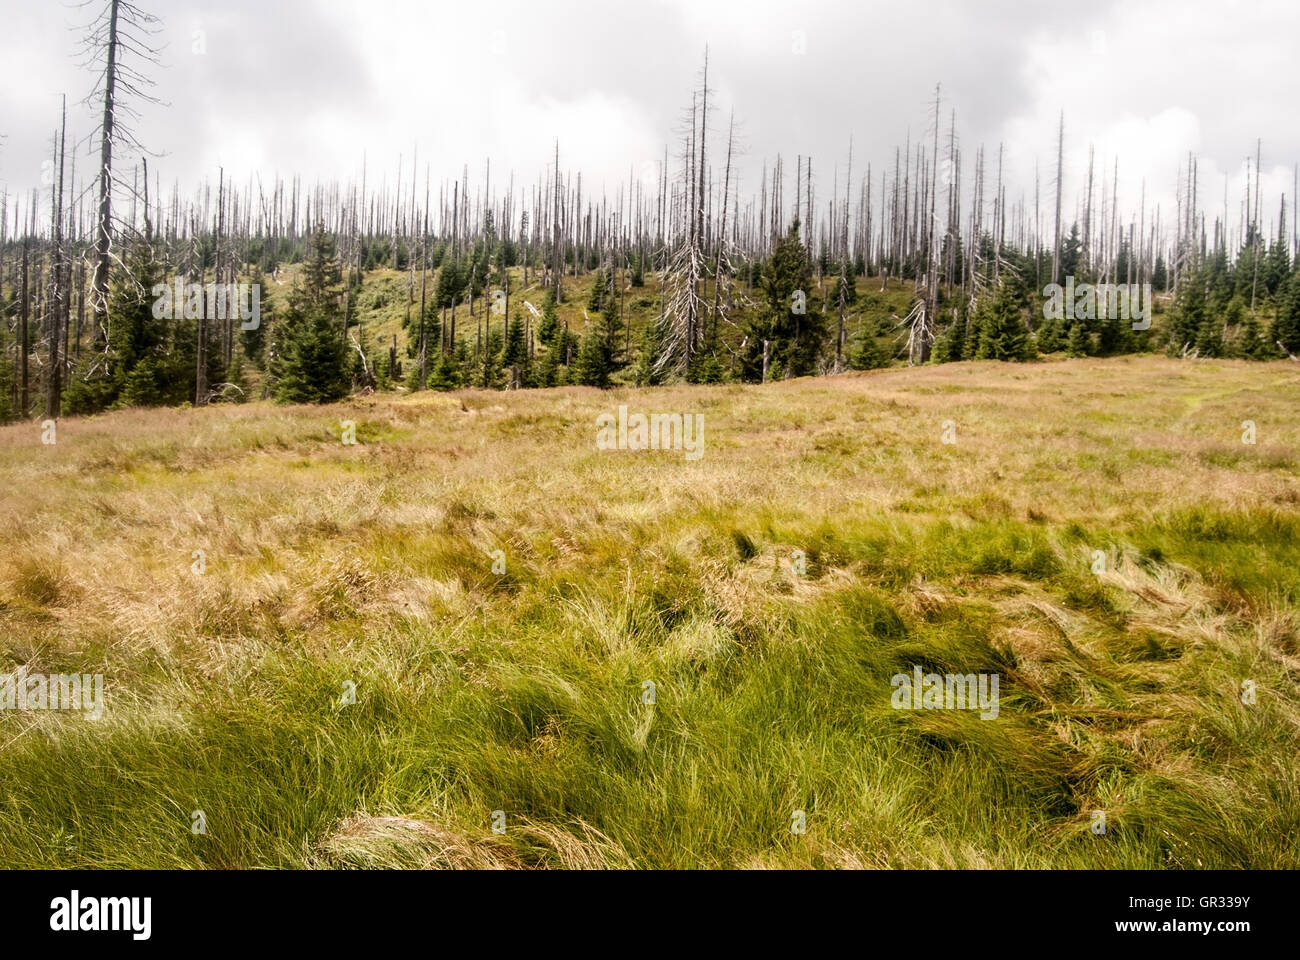 Kirchlinger Stand mountain meadow with forest devastated by bark beetle infestation bellow Steinfleckberg in Bavarian - Stock Image